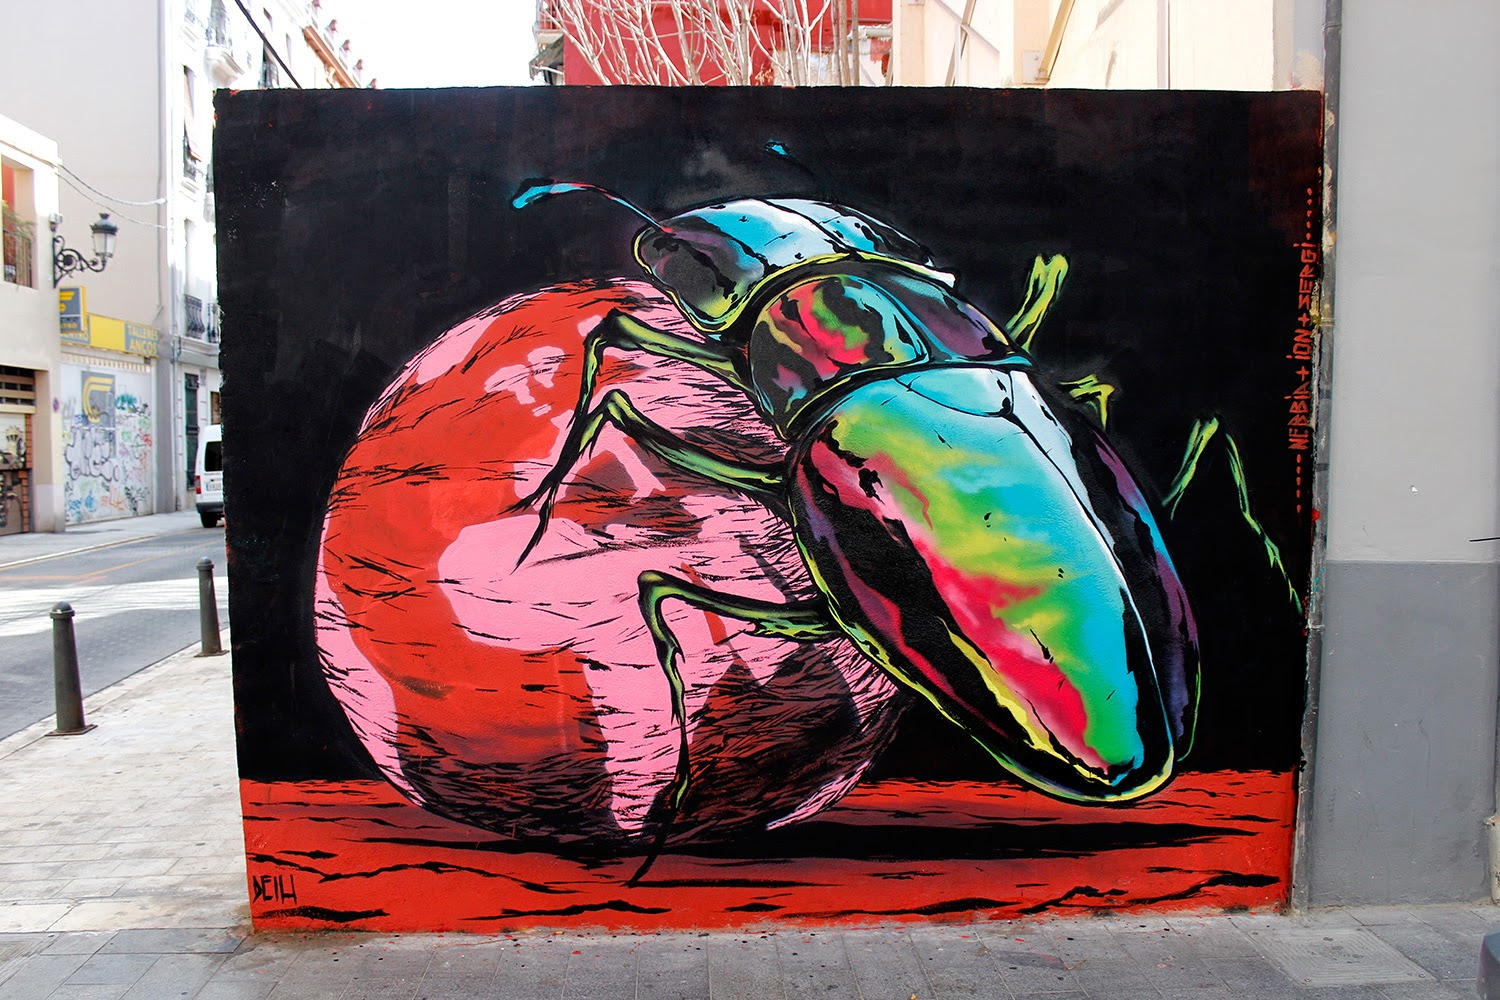 """While we last heard from him last week with """"Insight"""", Deih is already back on the streets of Valencia in Spain with this new piece which is entitled """"Keep It Rotating""""."""